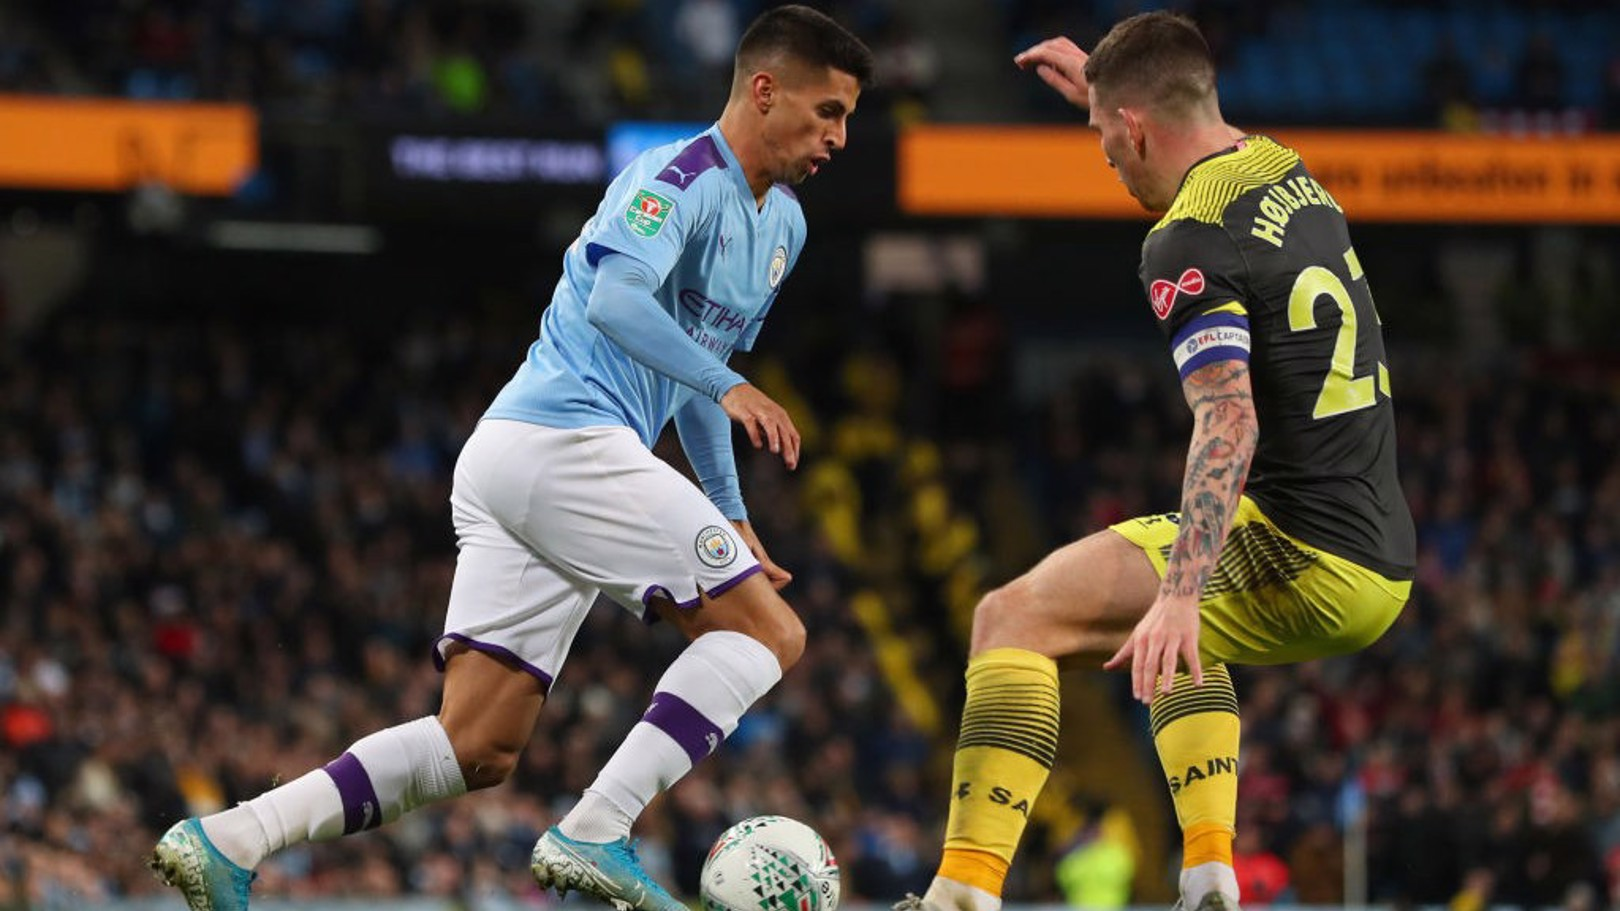 VERSATILE: Right and left-back duty for Joao Cancelo, who came off the bench in the second half.